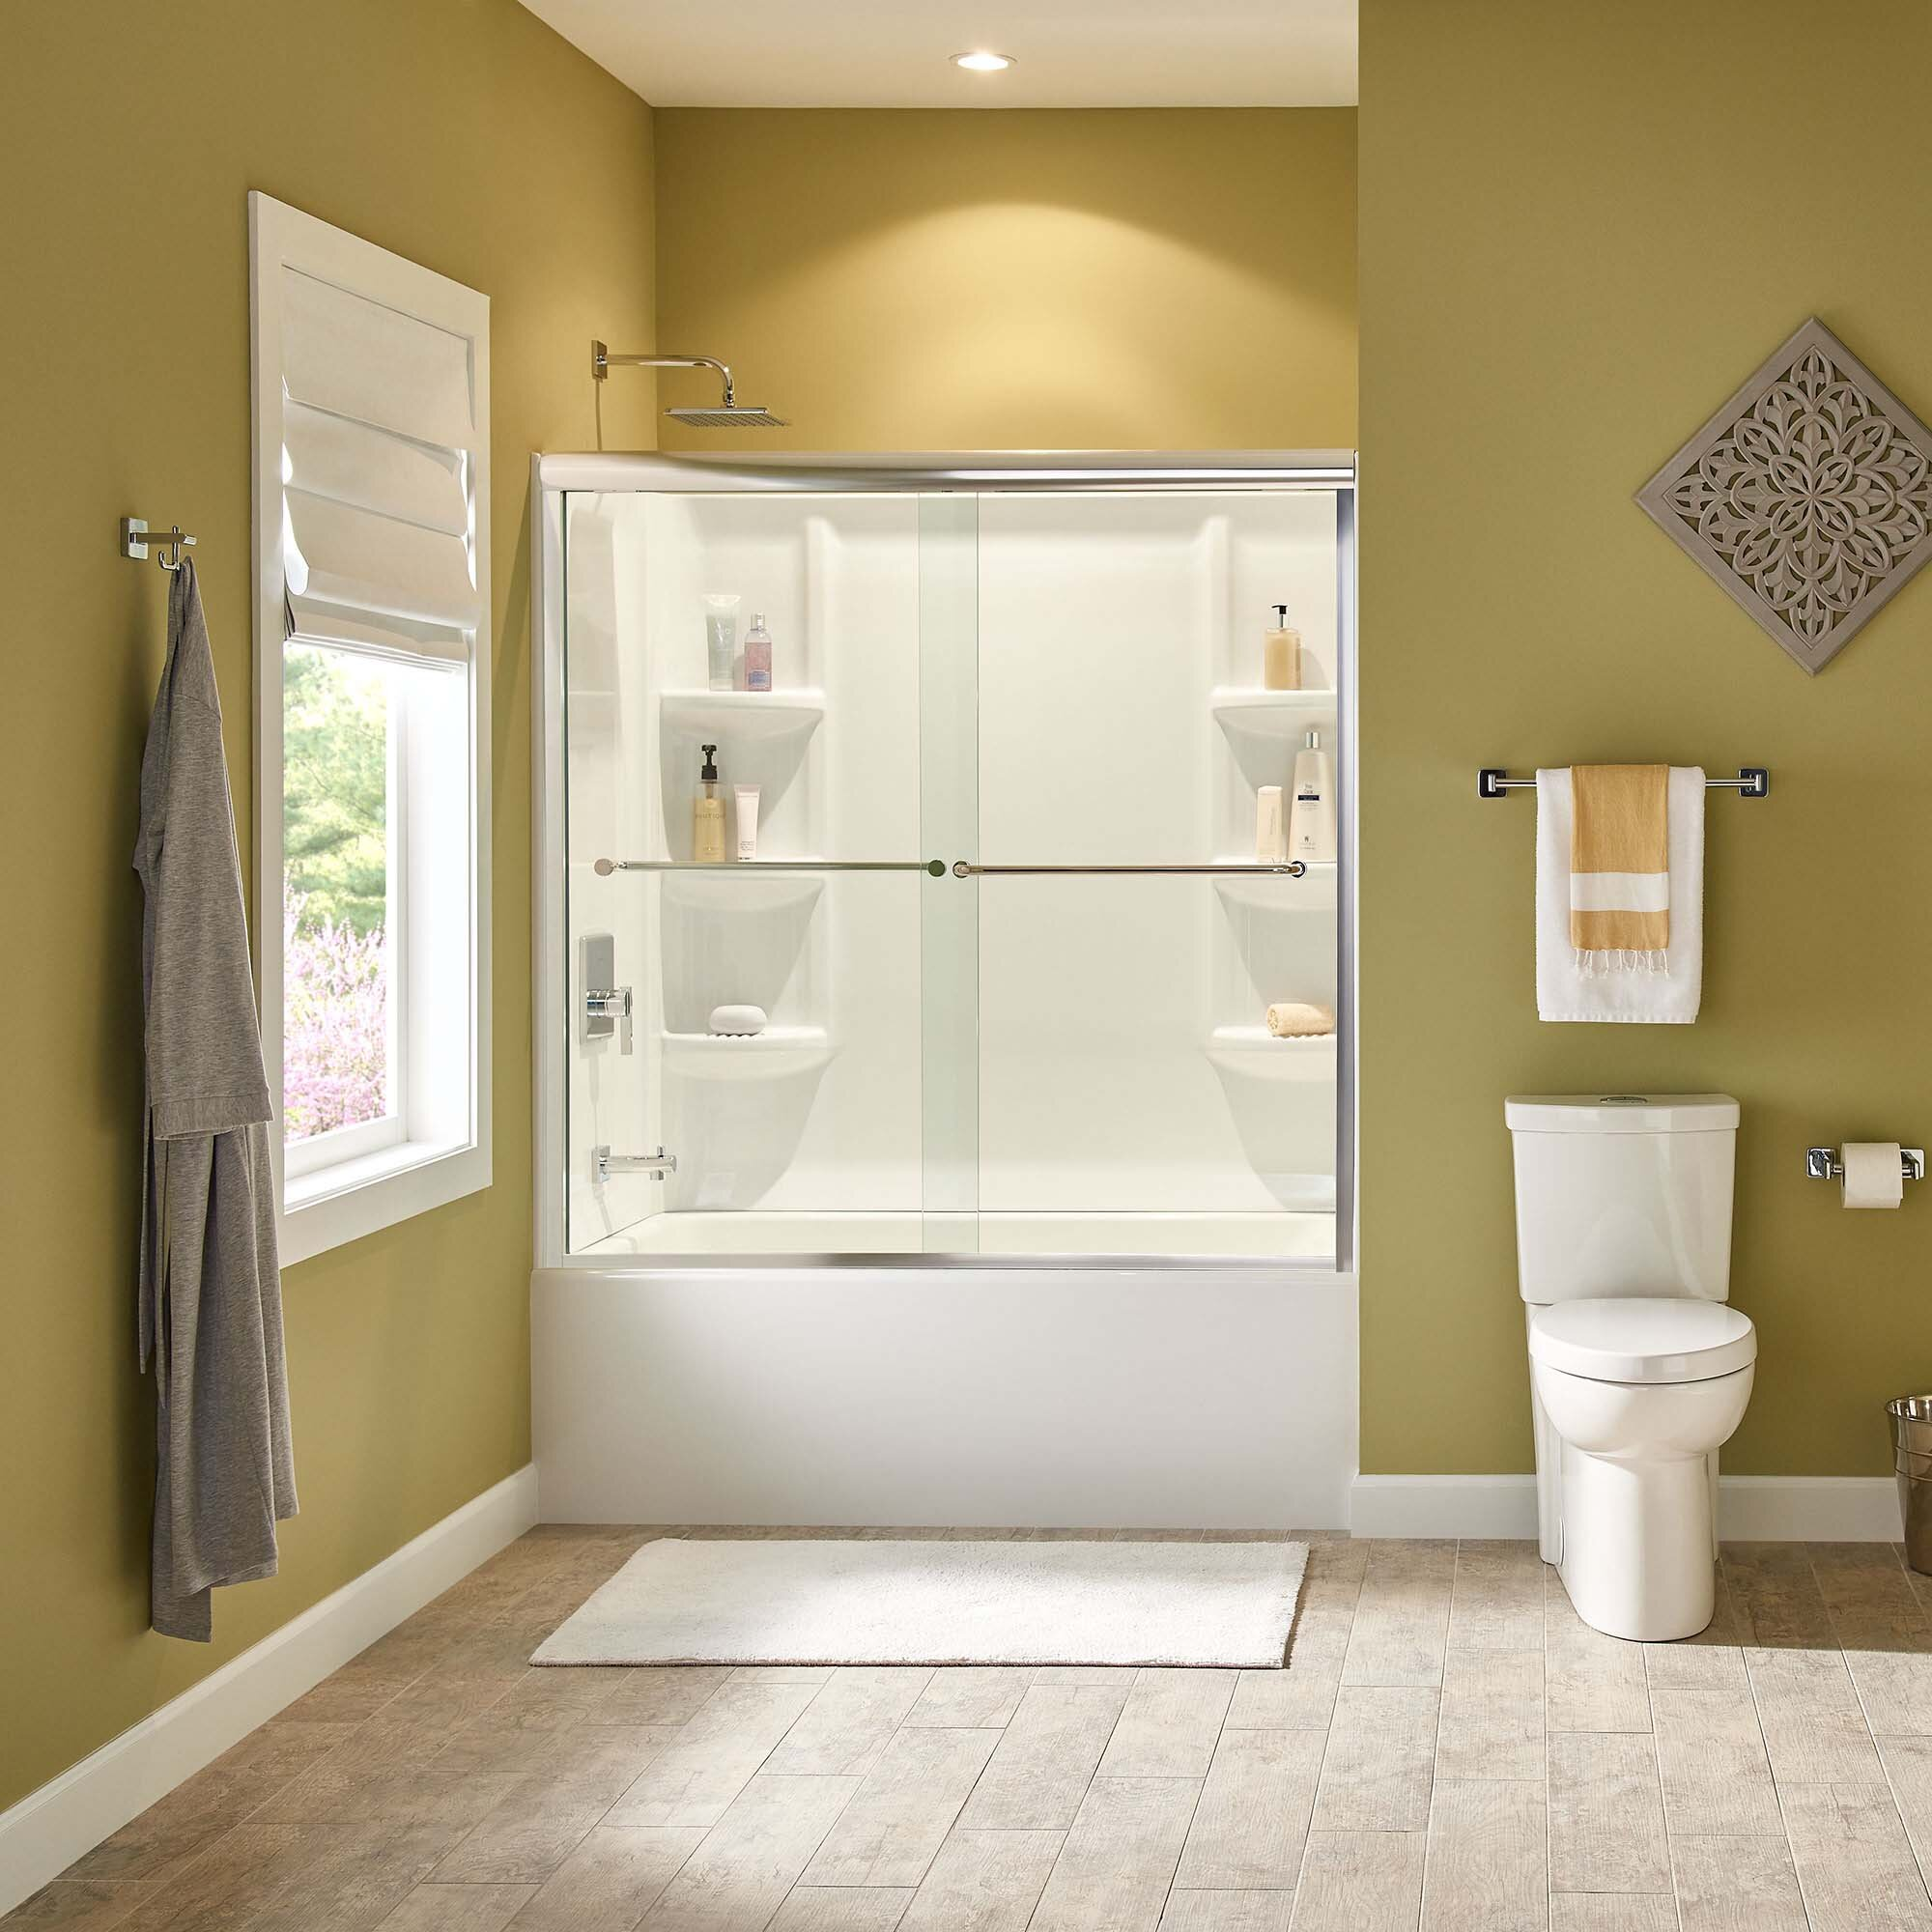 American Standard Studio 58 X 60 X 32 3 Panel Shower Wall Wayfair